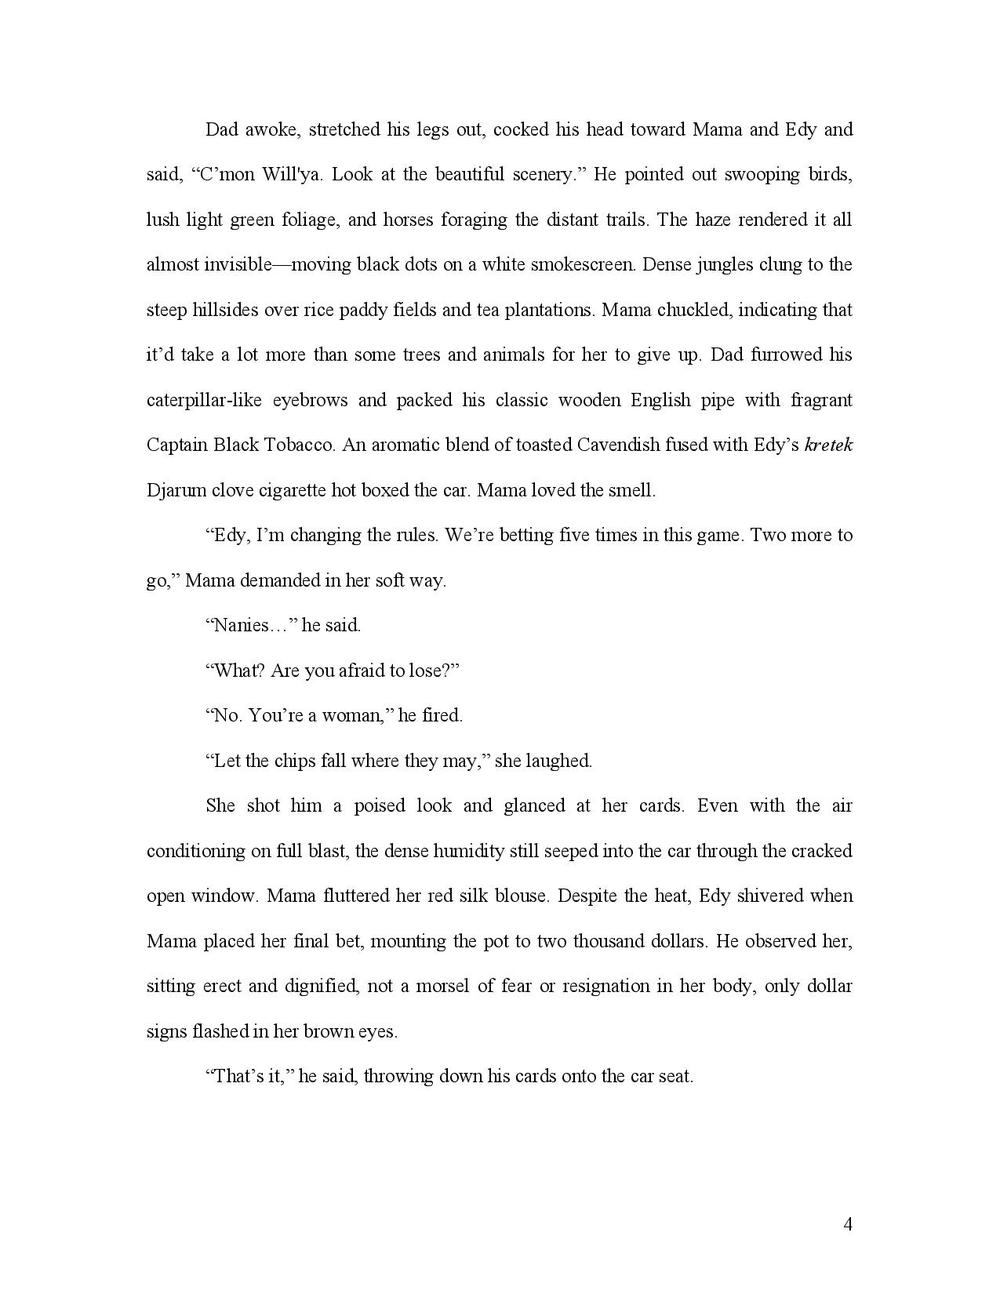 In The Cards_edit_excerpt-page-004.jpg